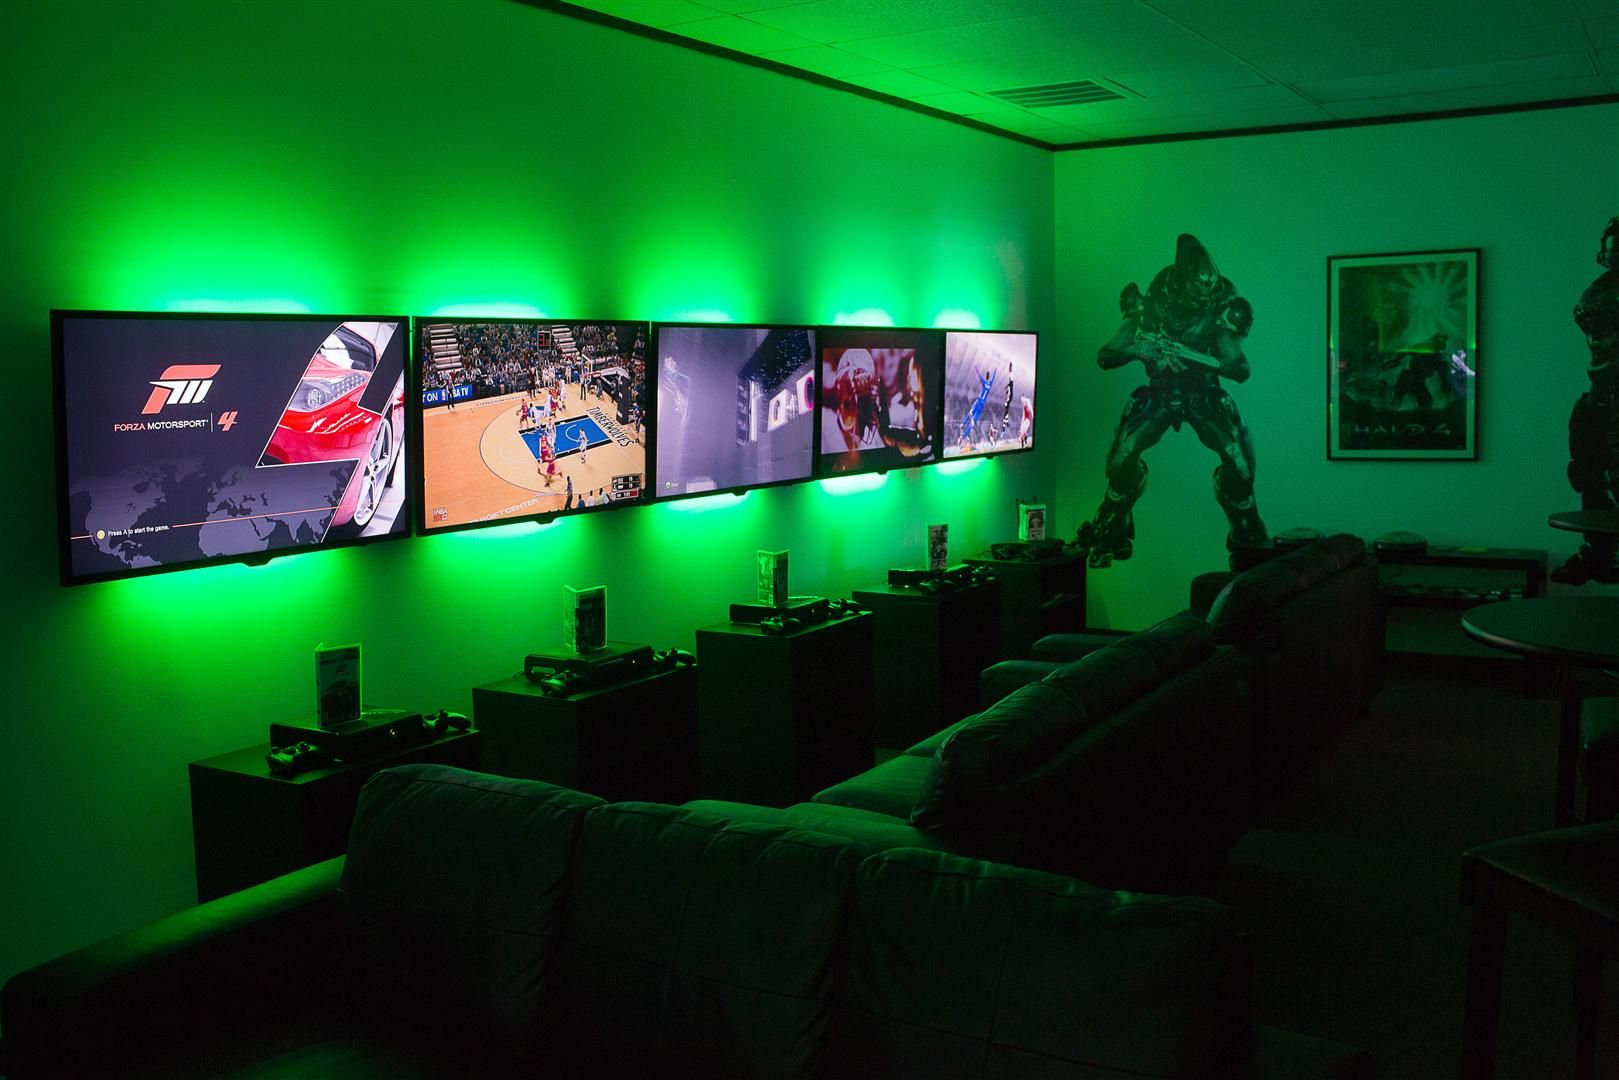 Xbox 360 lan party room oh man dream on right aidens for Room decorating games